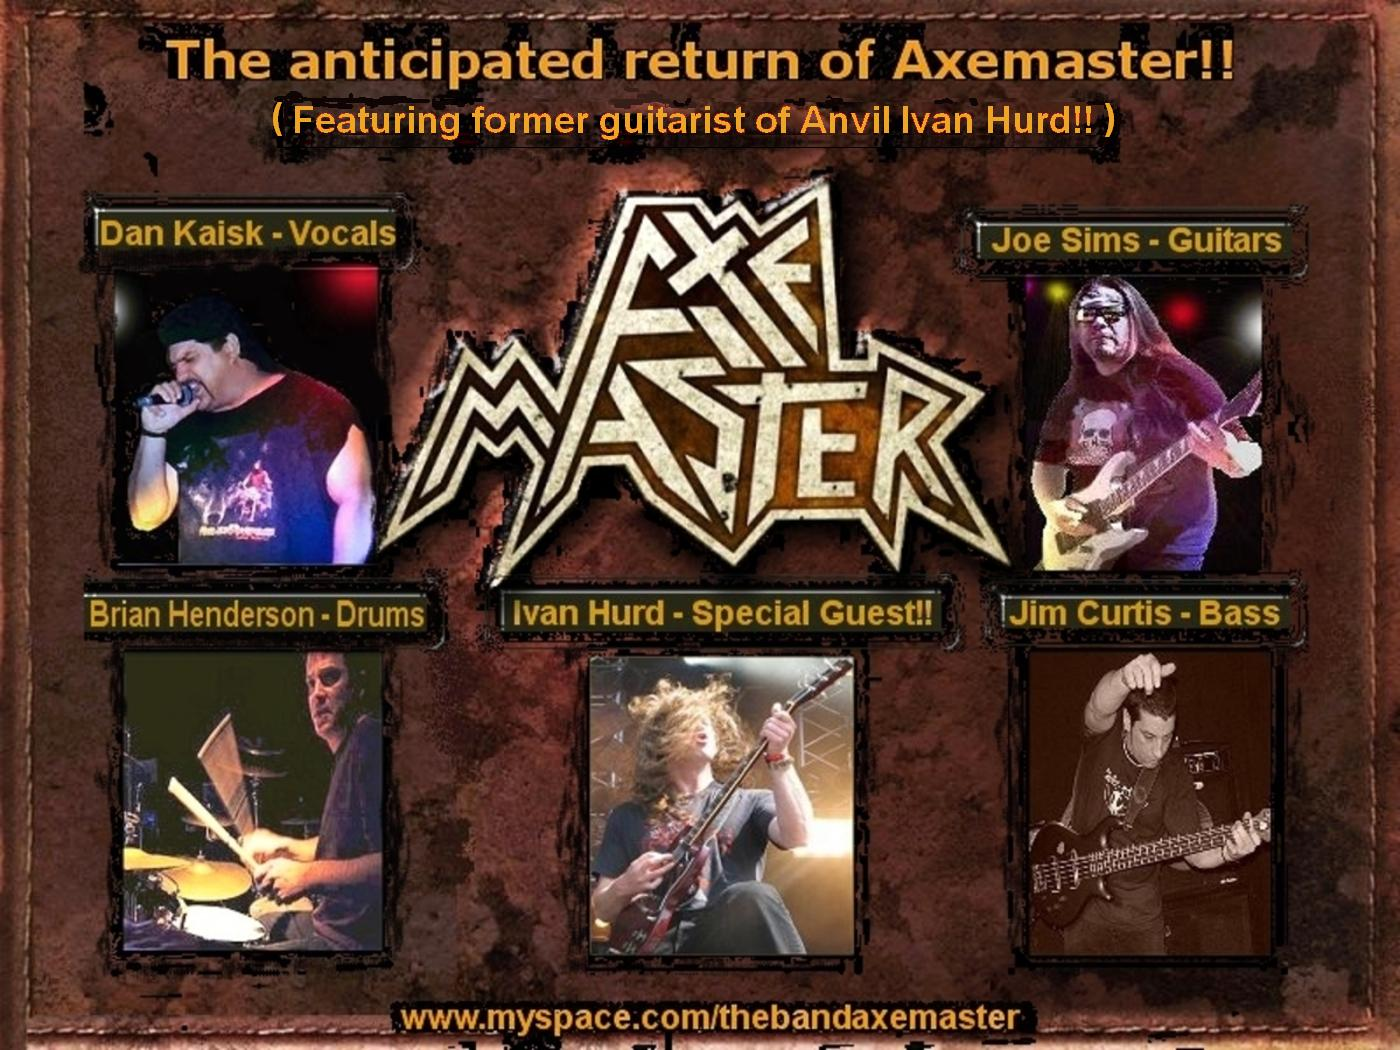 http://indiemusicpeople.com/uploads2/AXEMASTER_-_Axemaster_Promo_with_Ivan_(edited).JPG